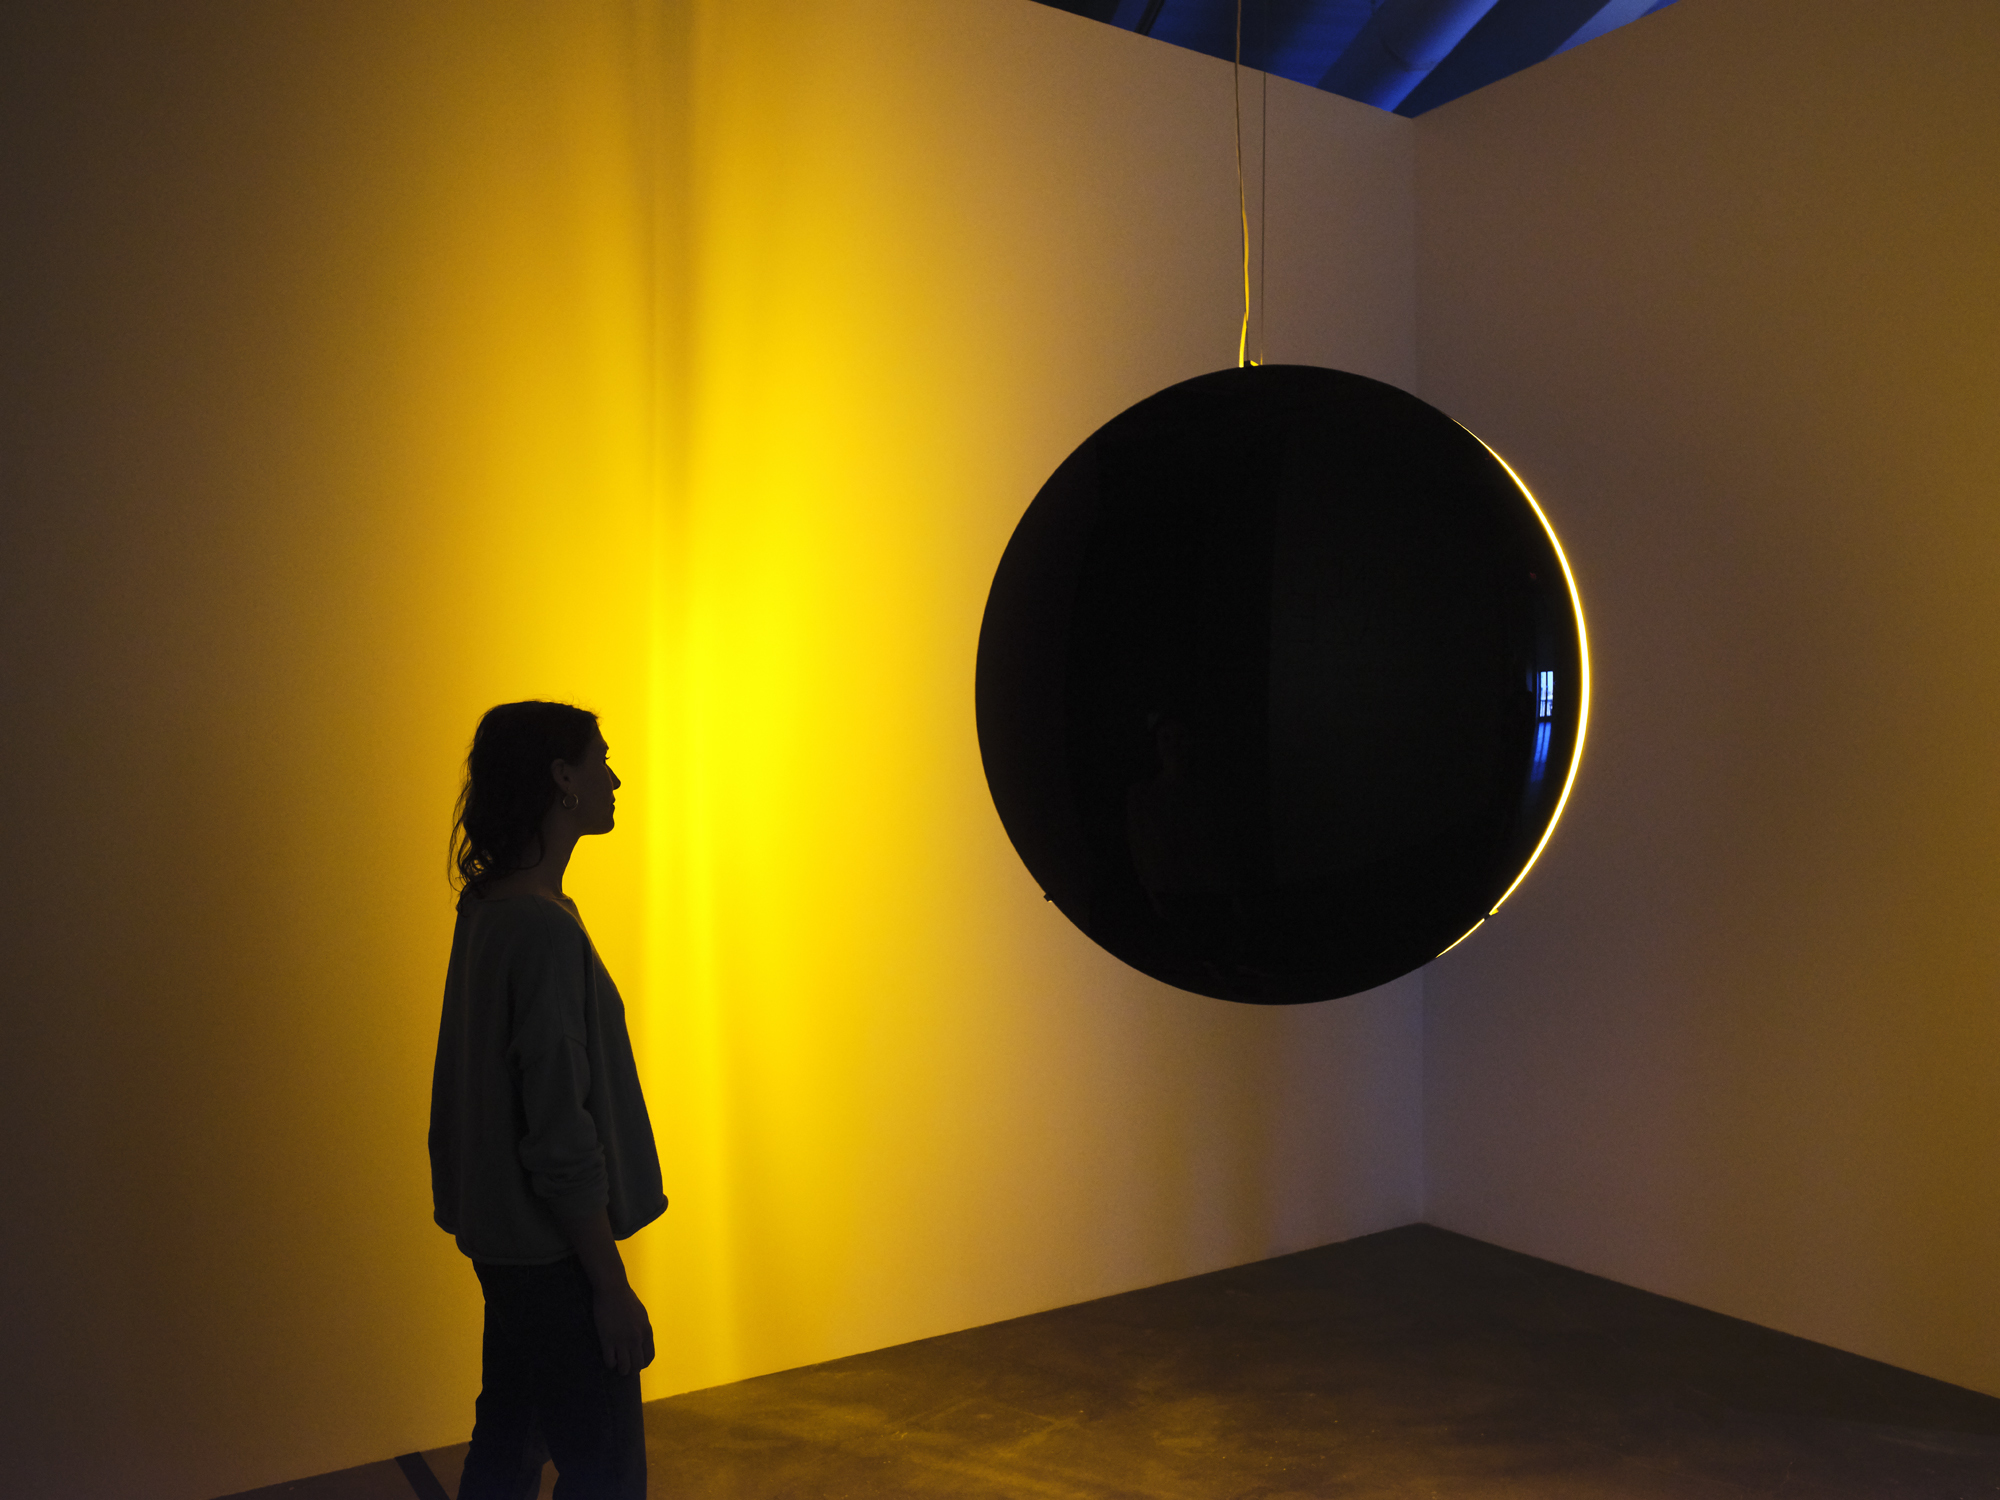 A figure is obscured by shadow as they observe a light sculpture emitting a warm golden glow from a black spherical object